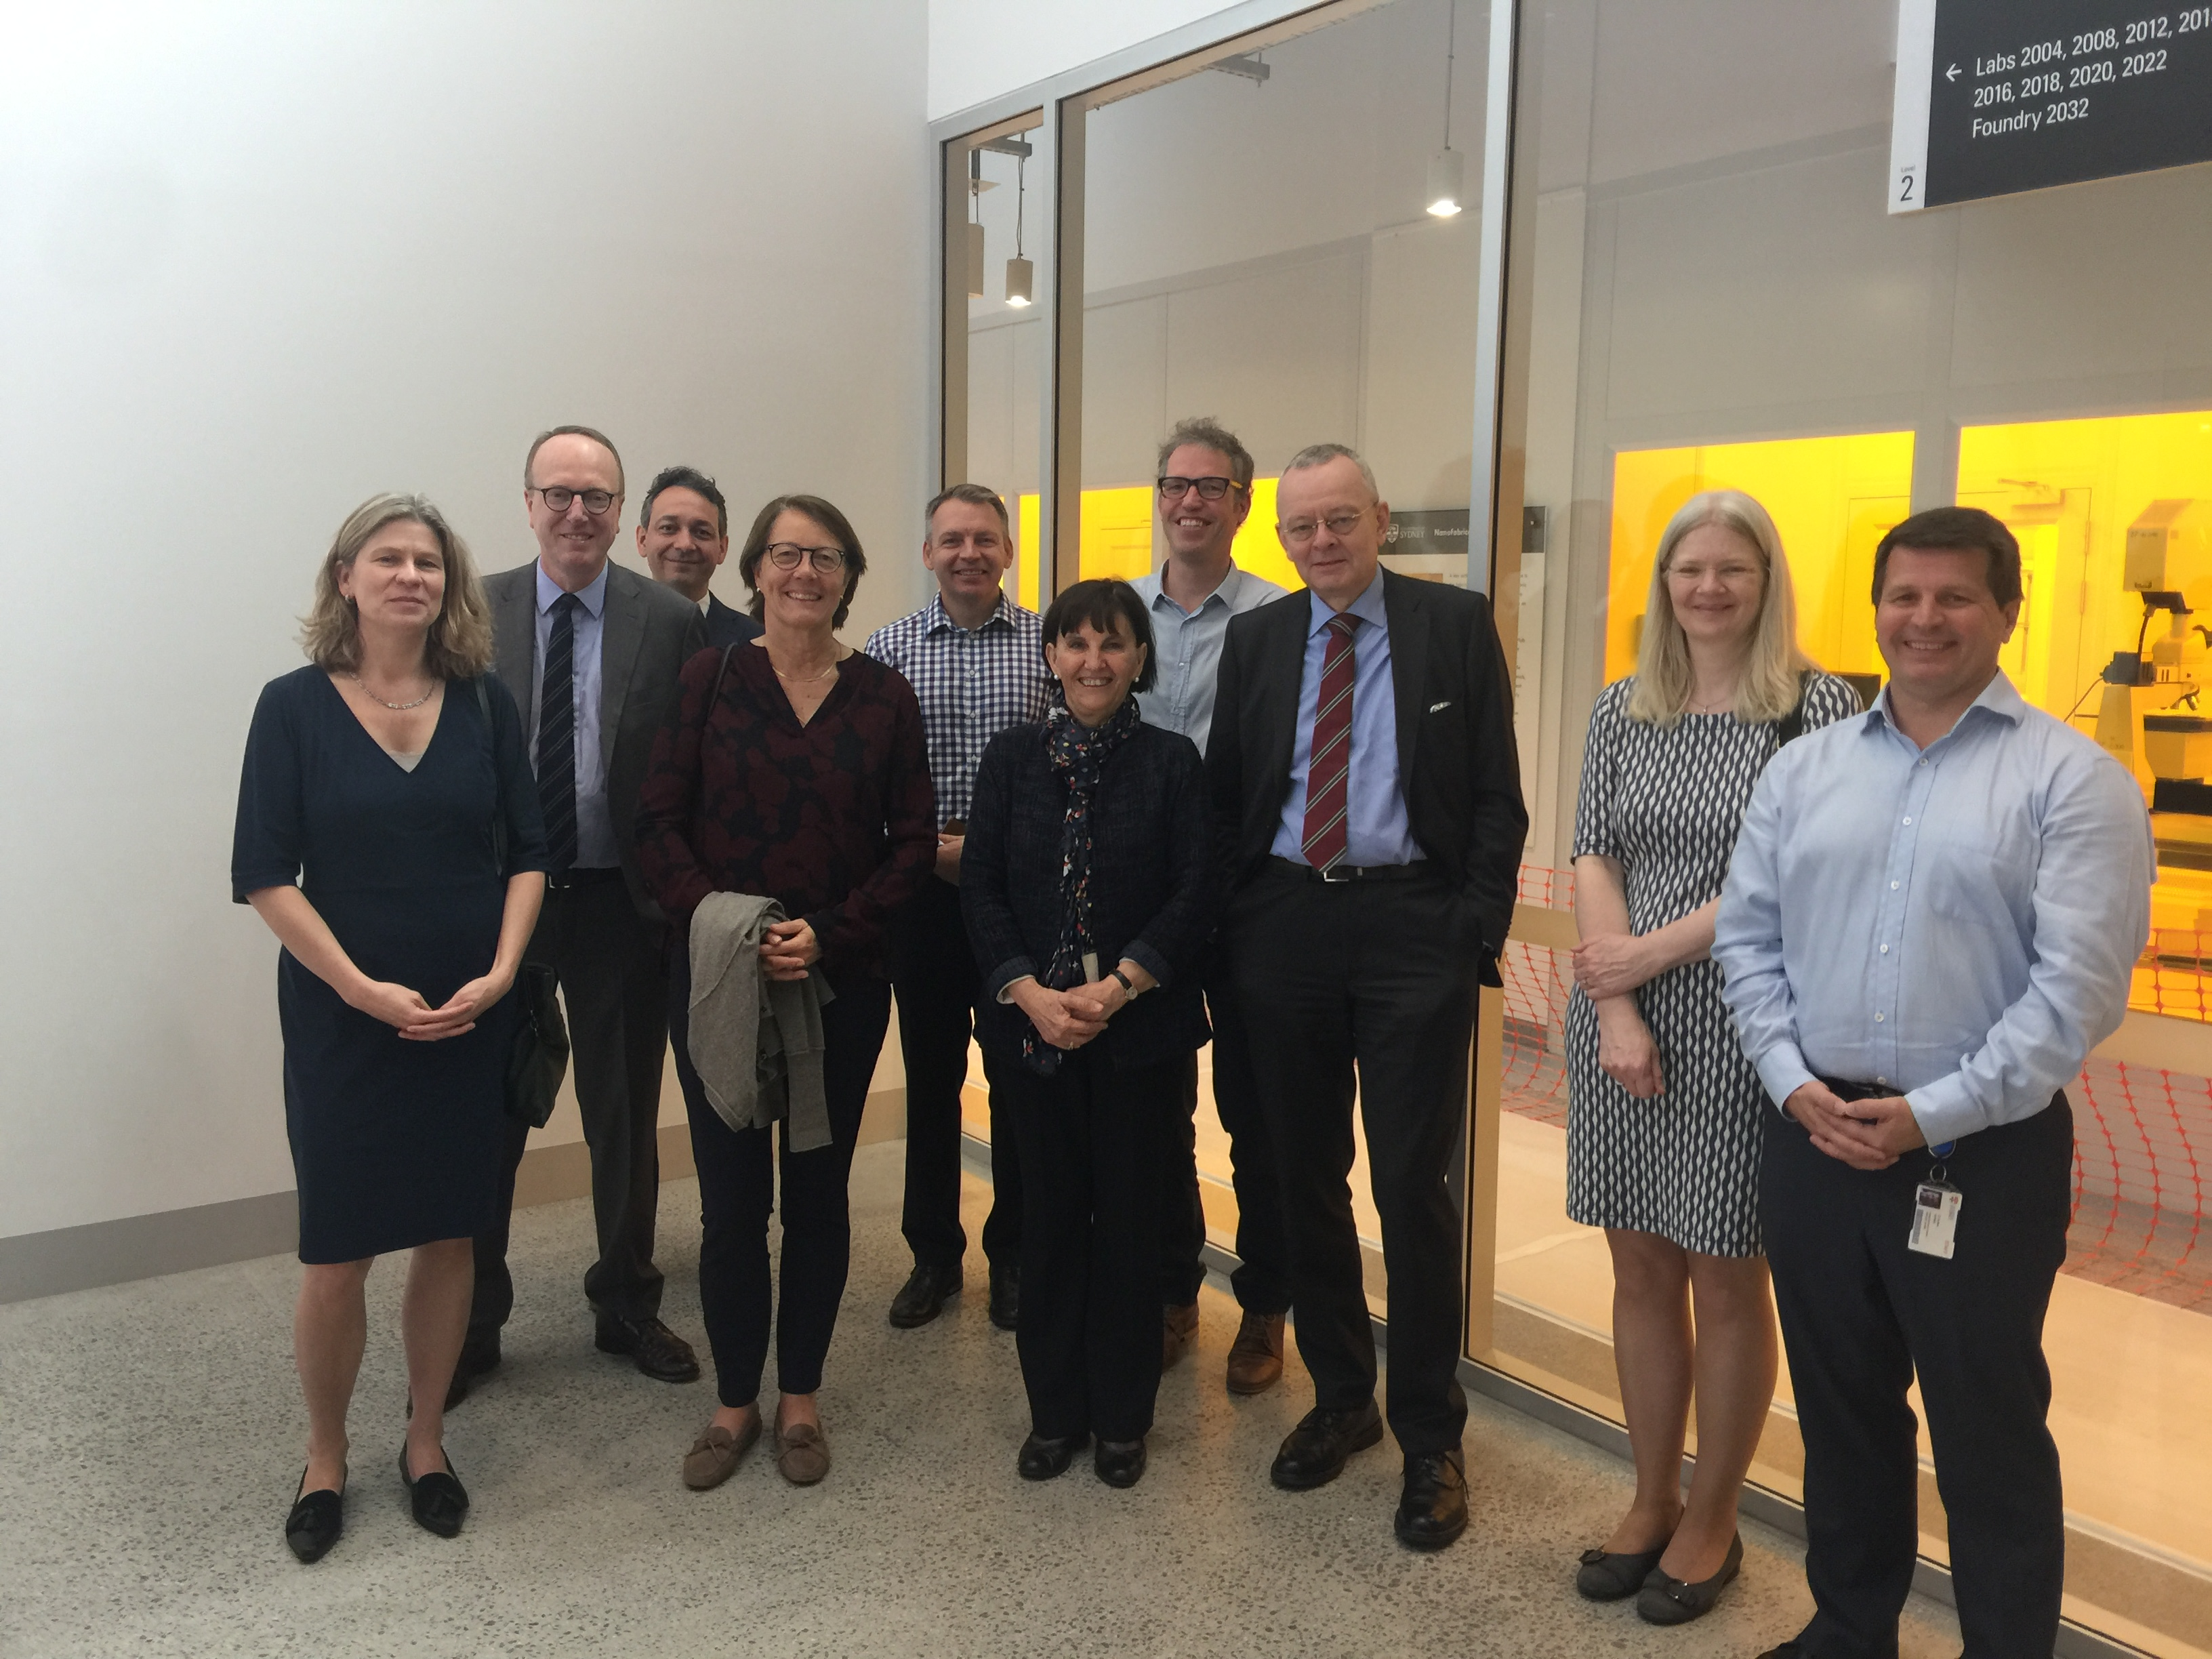 Utrecht University partners with Sydney University